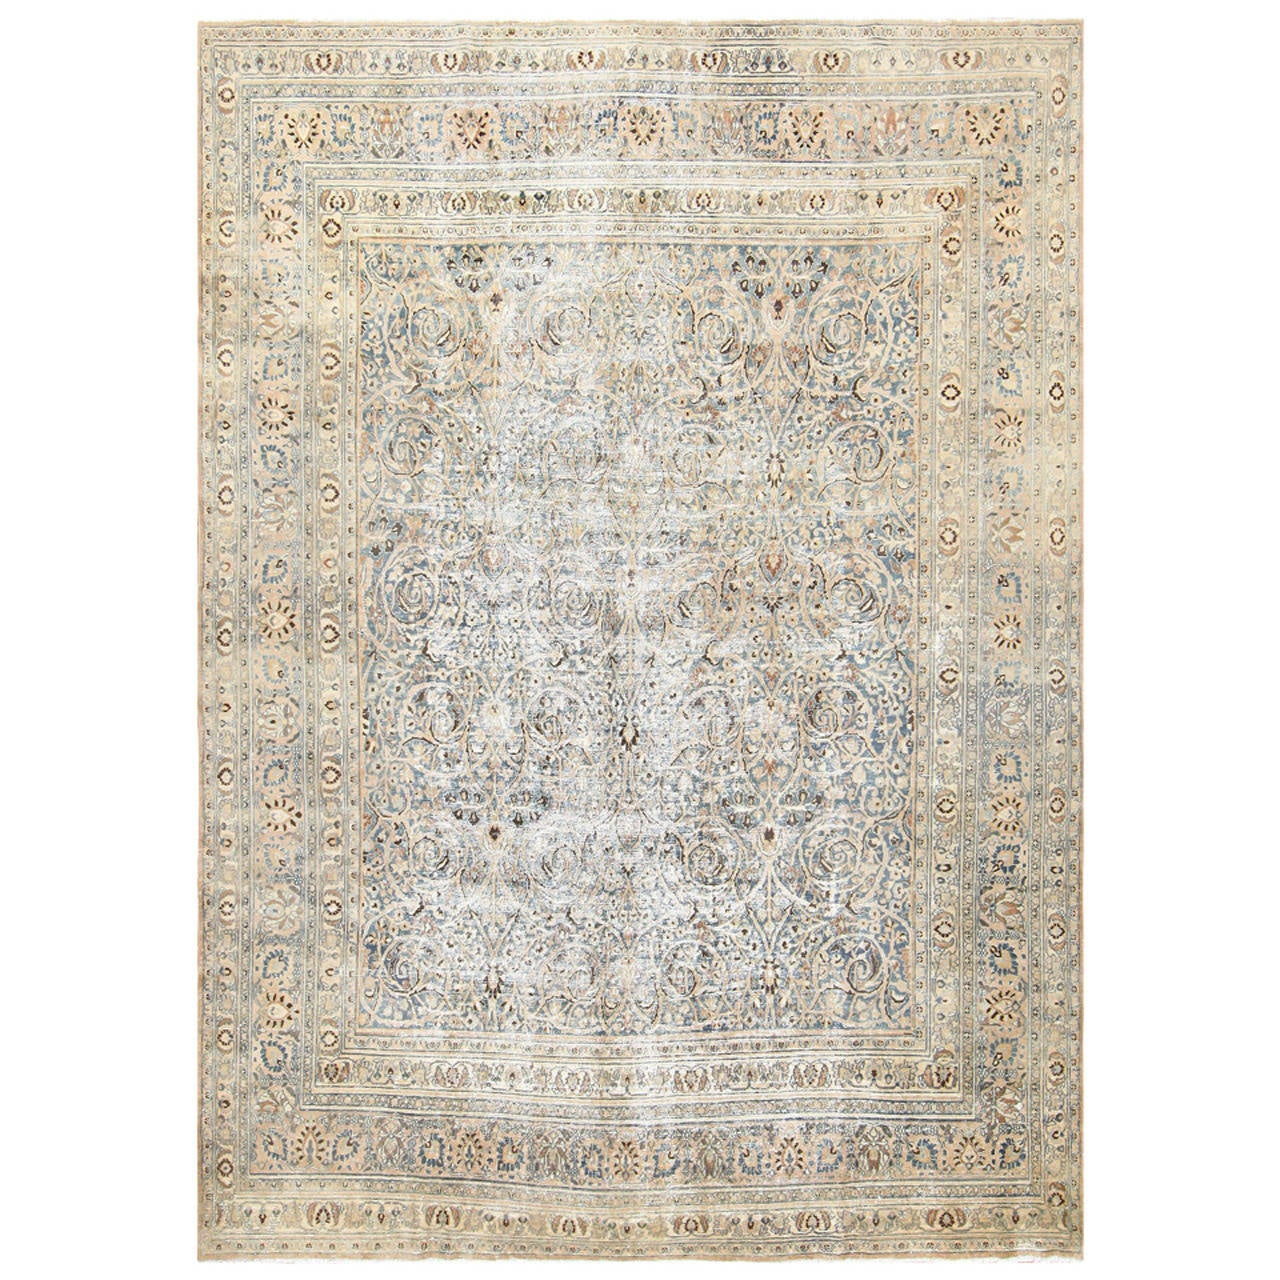 Shabby Chic Persian Khorassan Carpet